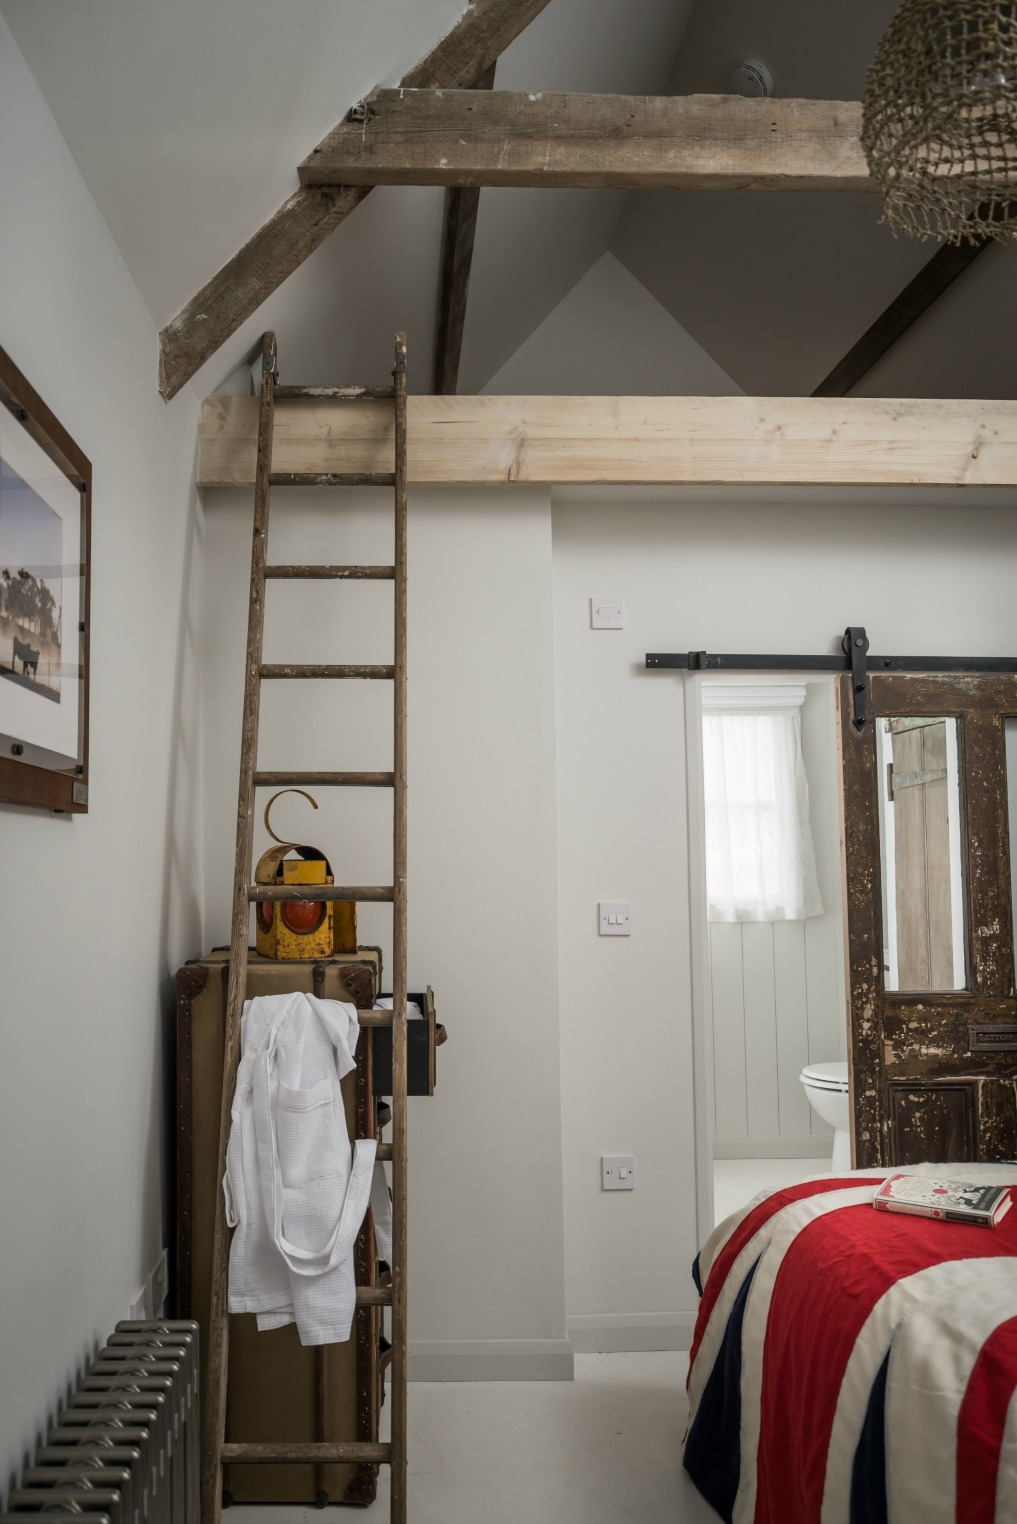 A vintage ladder leads to a loft in the bedroom kellyelko.com